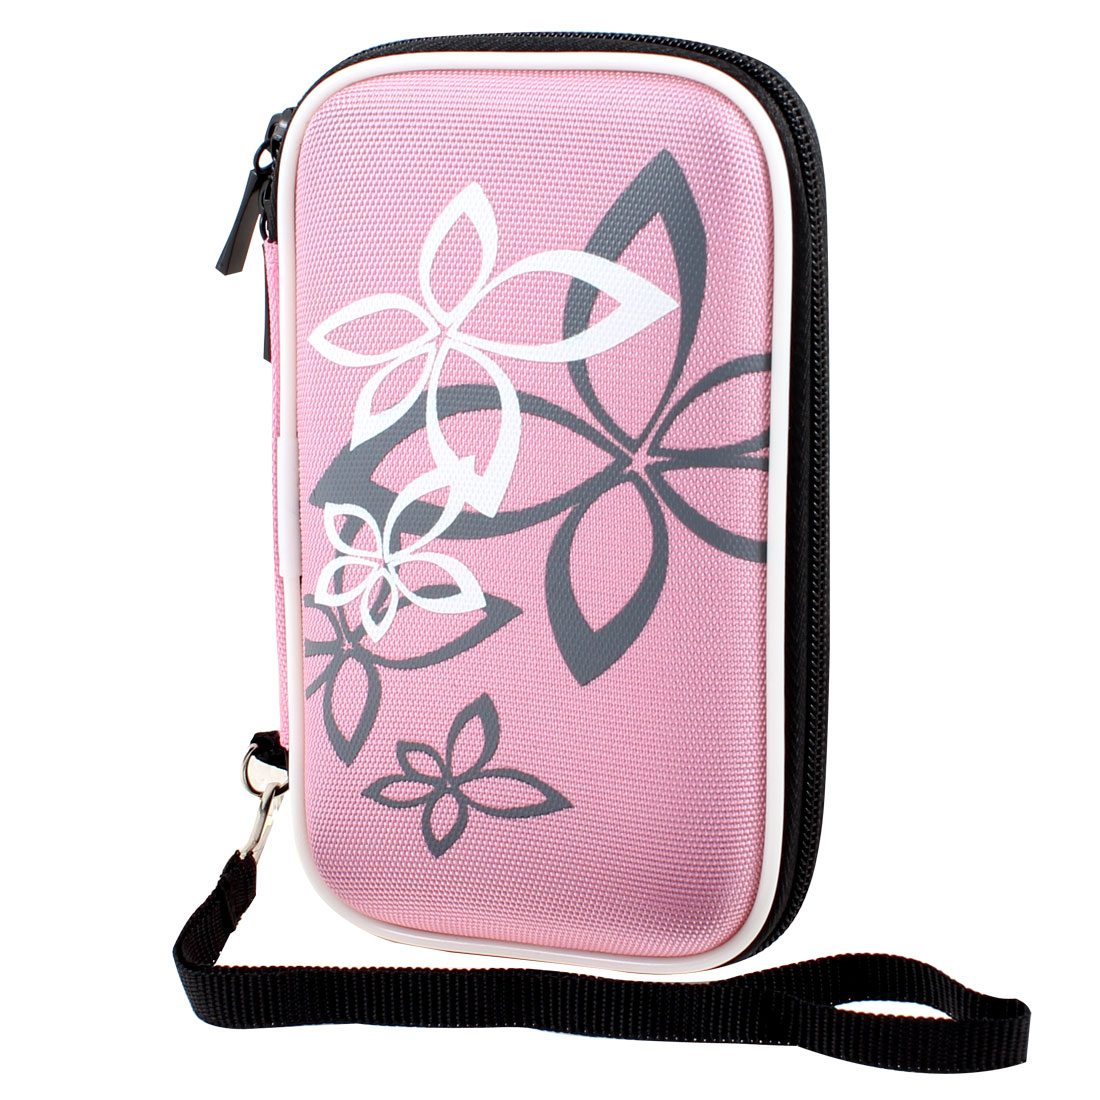 "Pink Protective Case Bag Pouch Zipper Closure for 2.5"" HDD Hard Drive Disk"